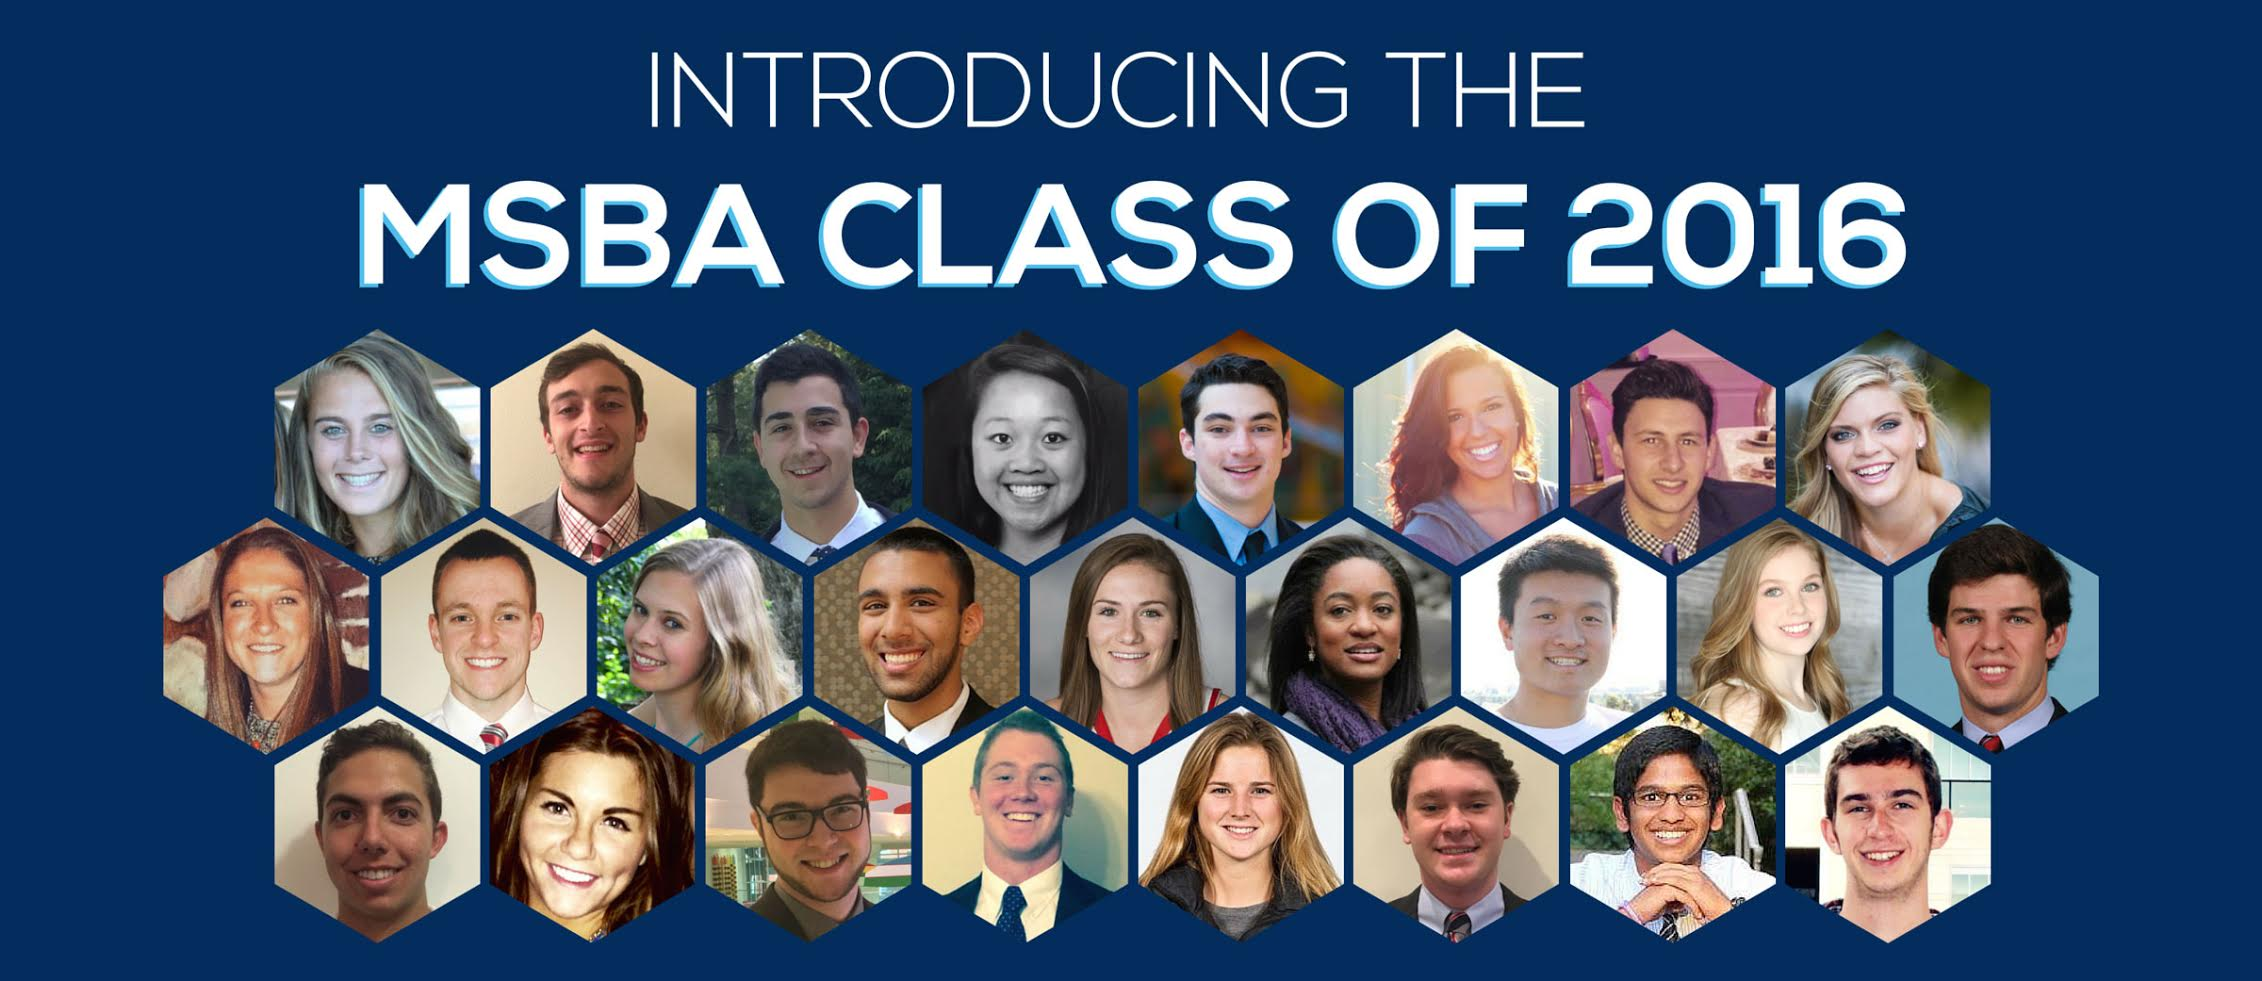 INTRODUCING_the_MSBA_Class_of_2016